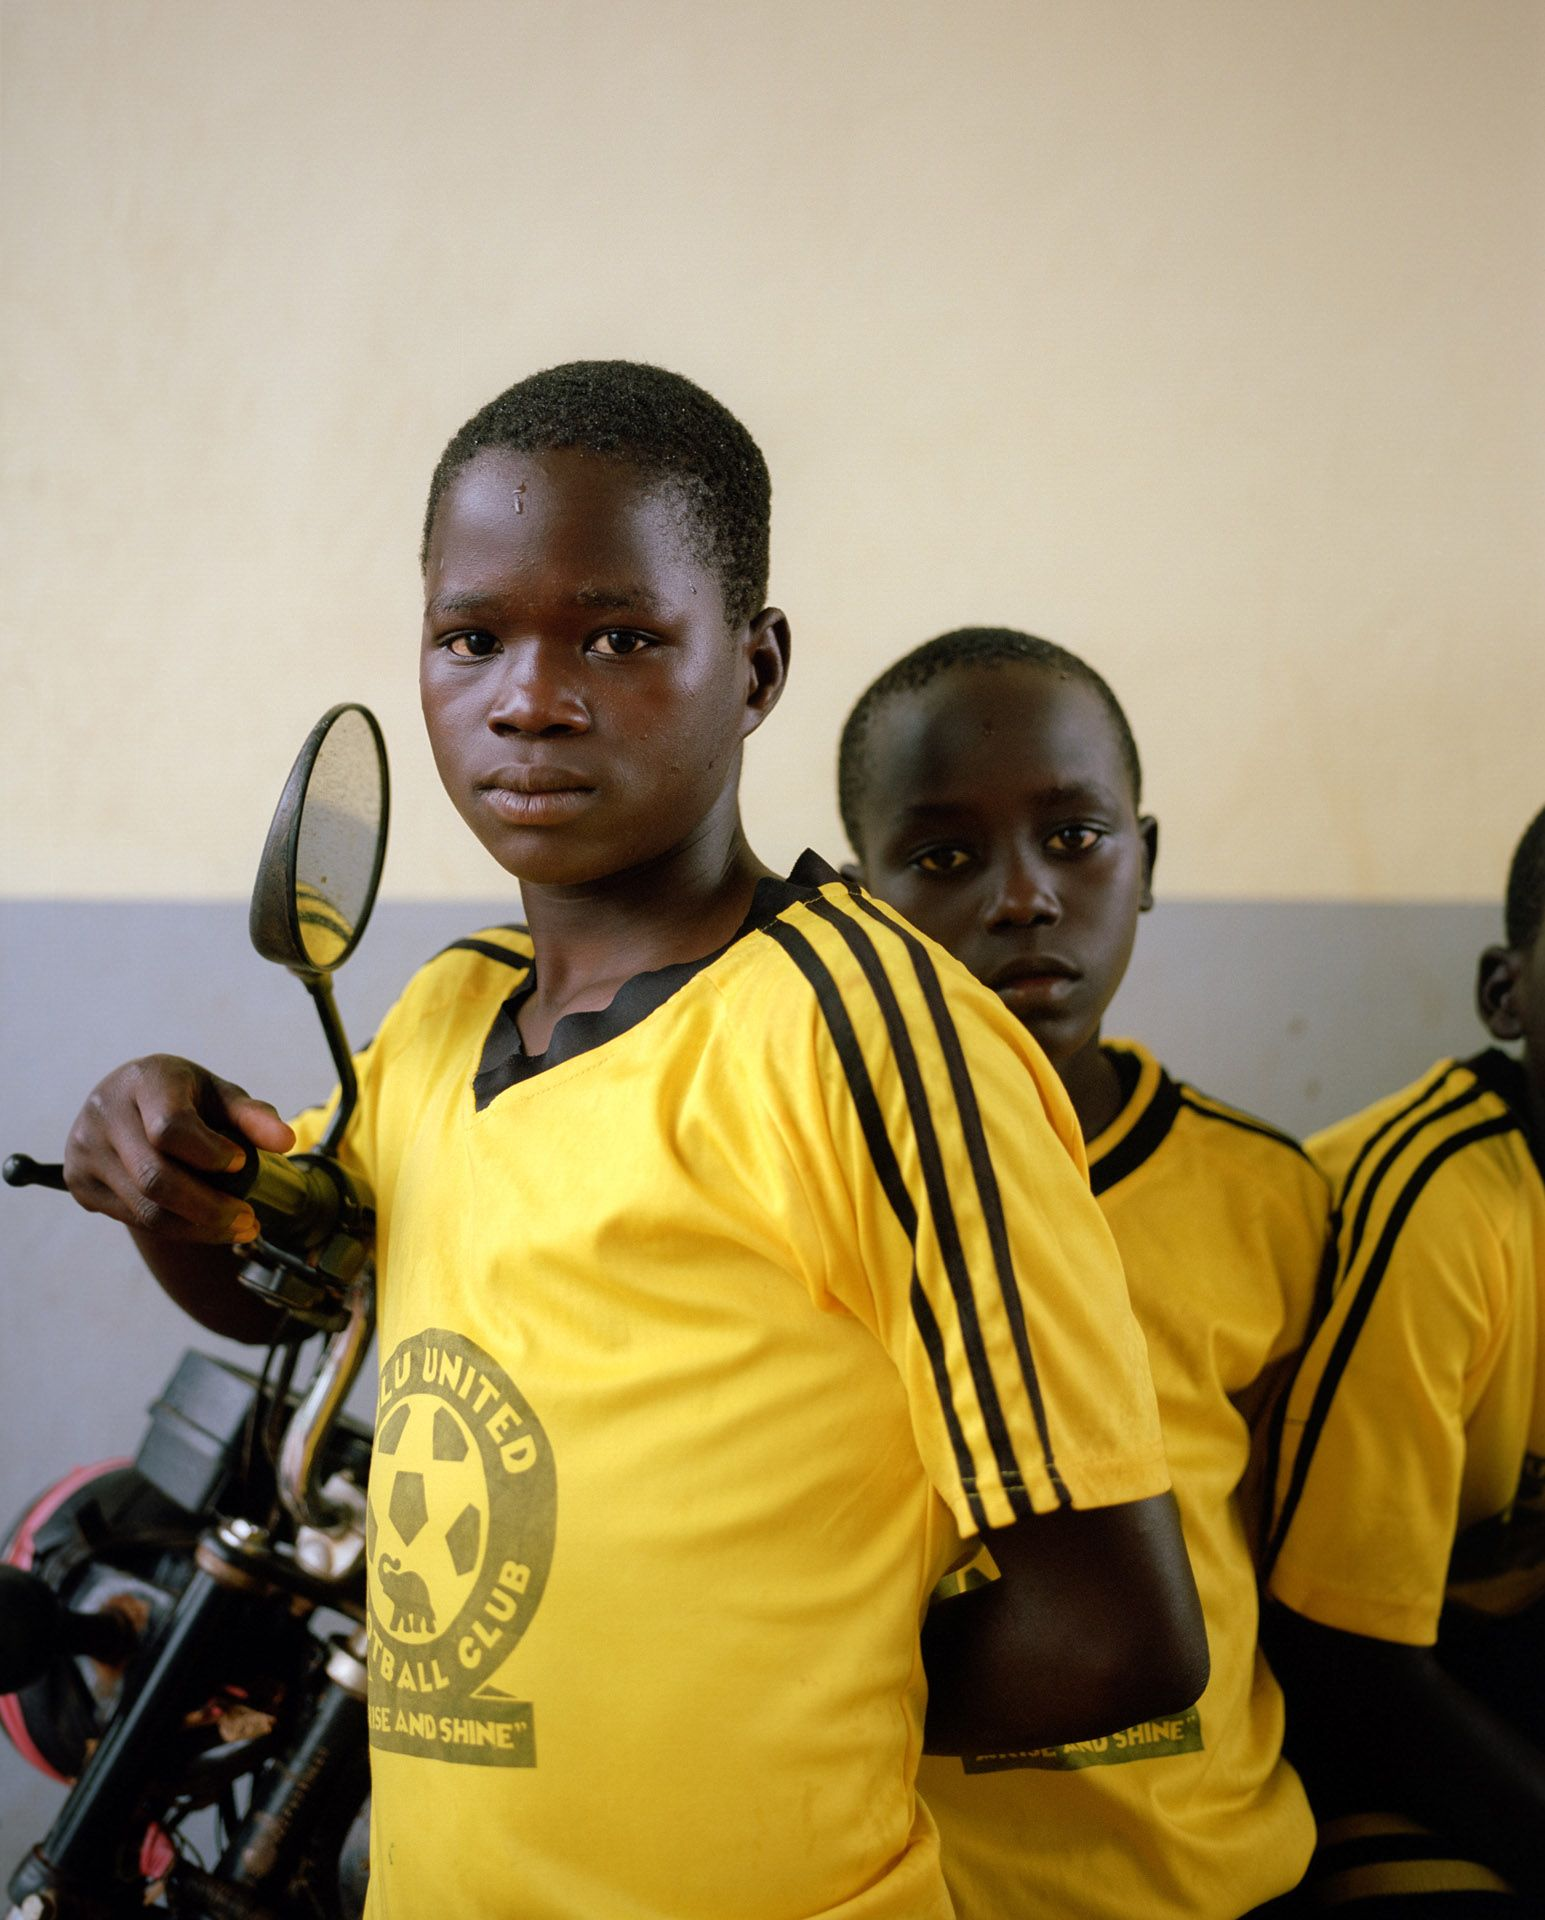 close up of young black boys on scooter looking at camera by Alexi Hobbs in Uganda for Football for good with Sportsnet